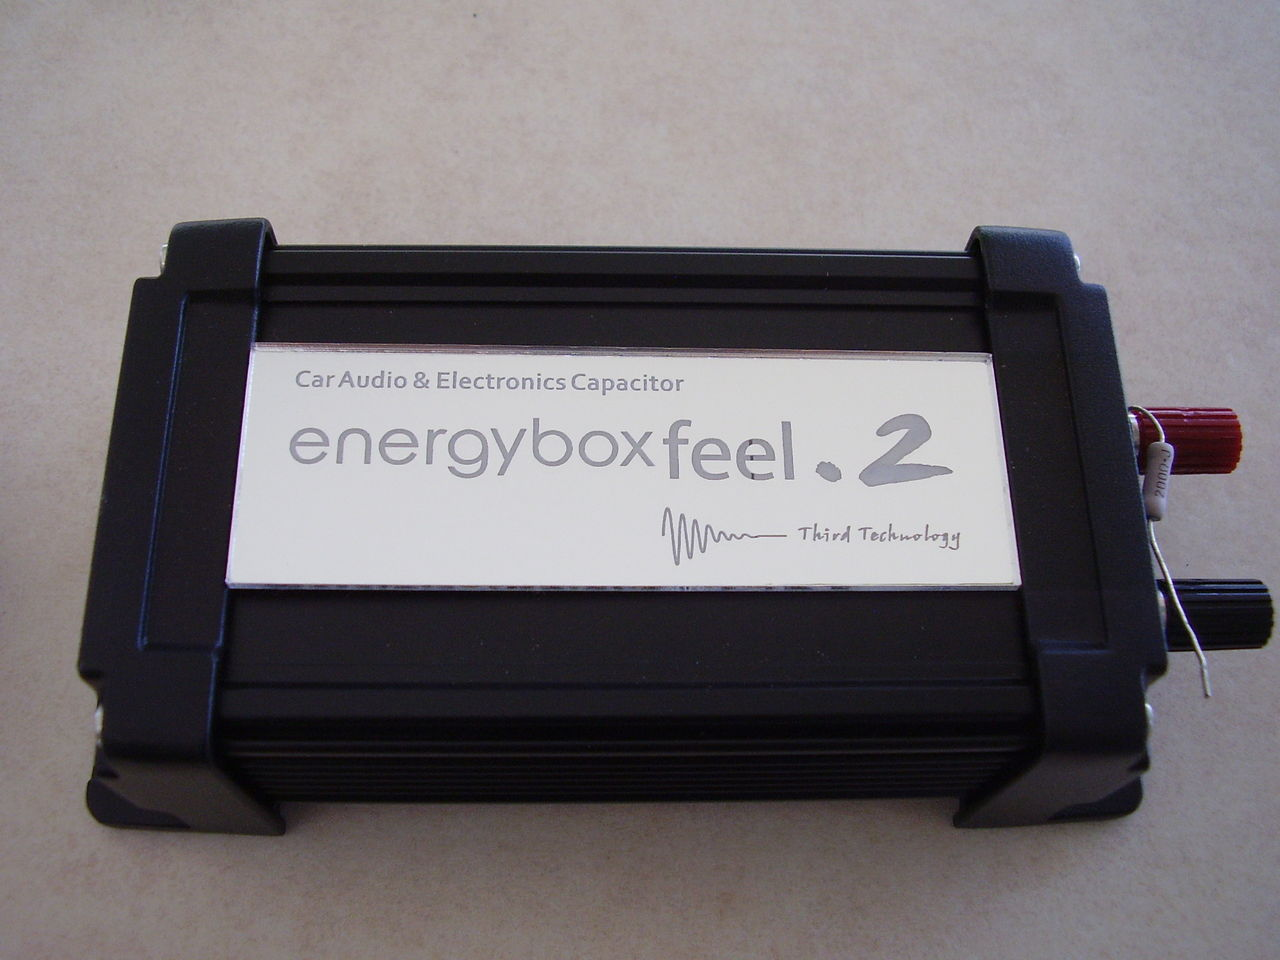 third technology energybox feel .2